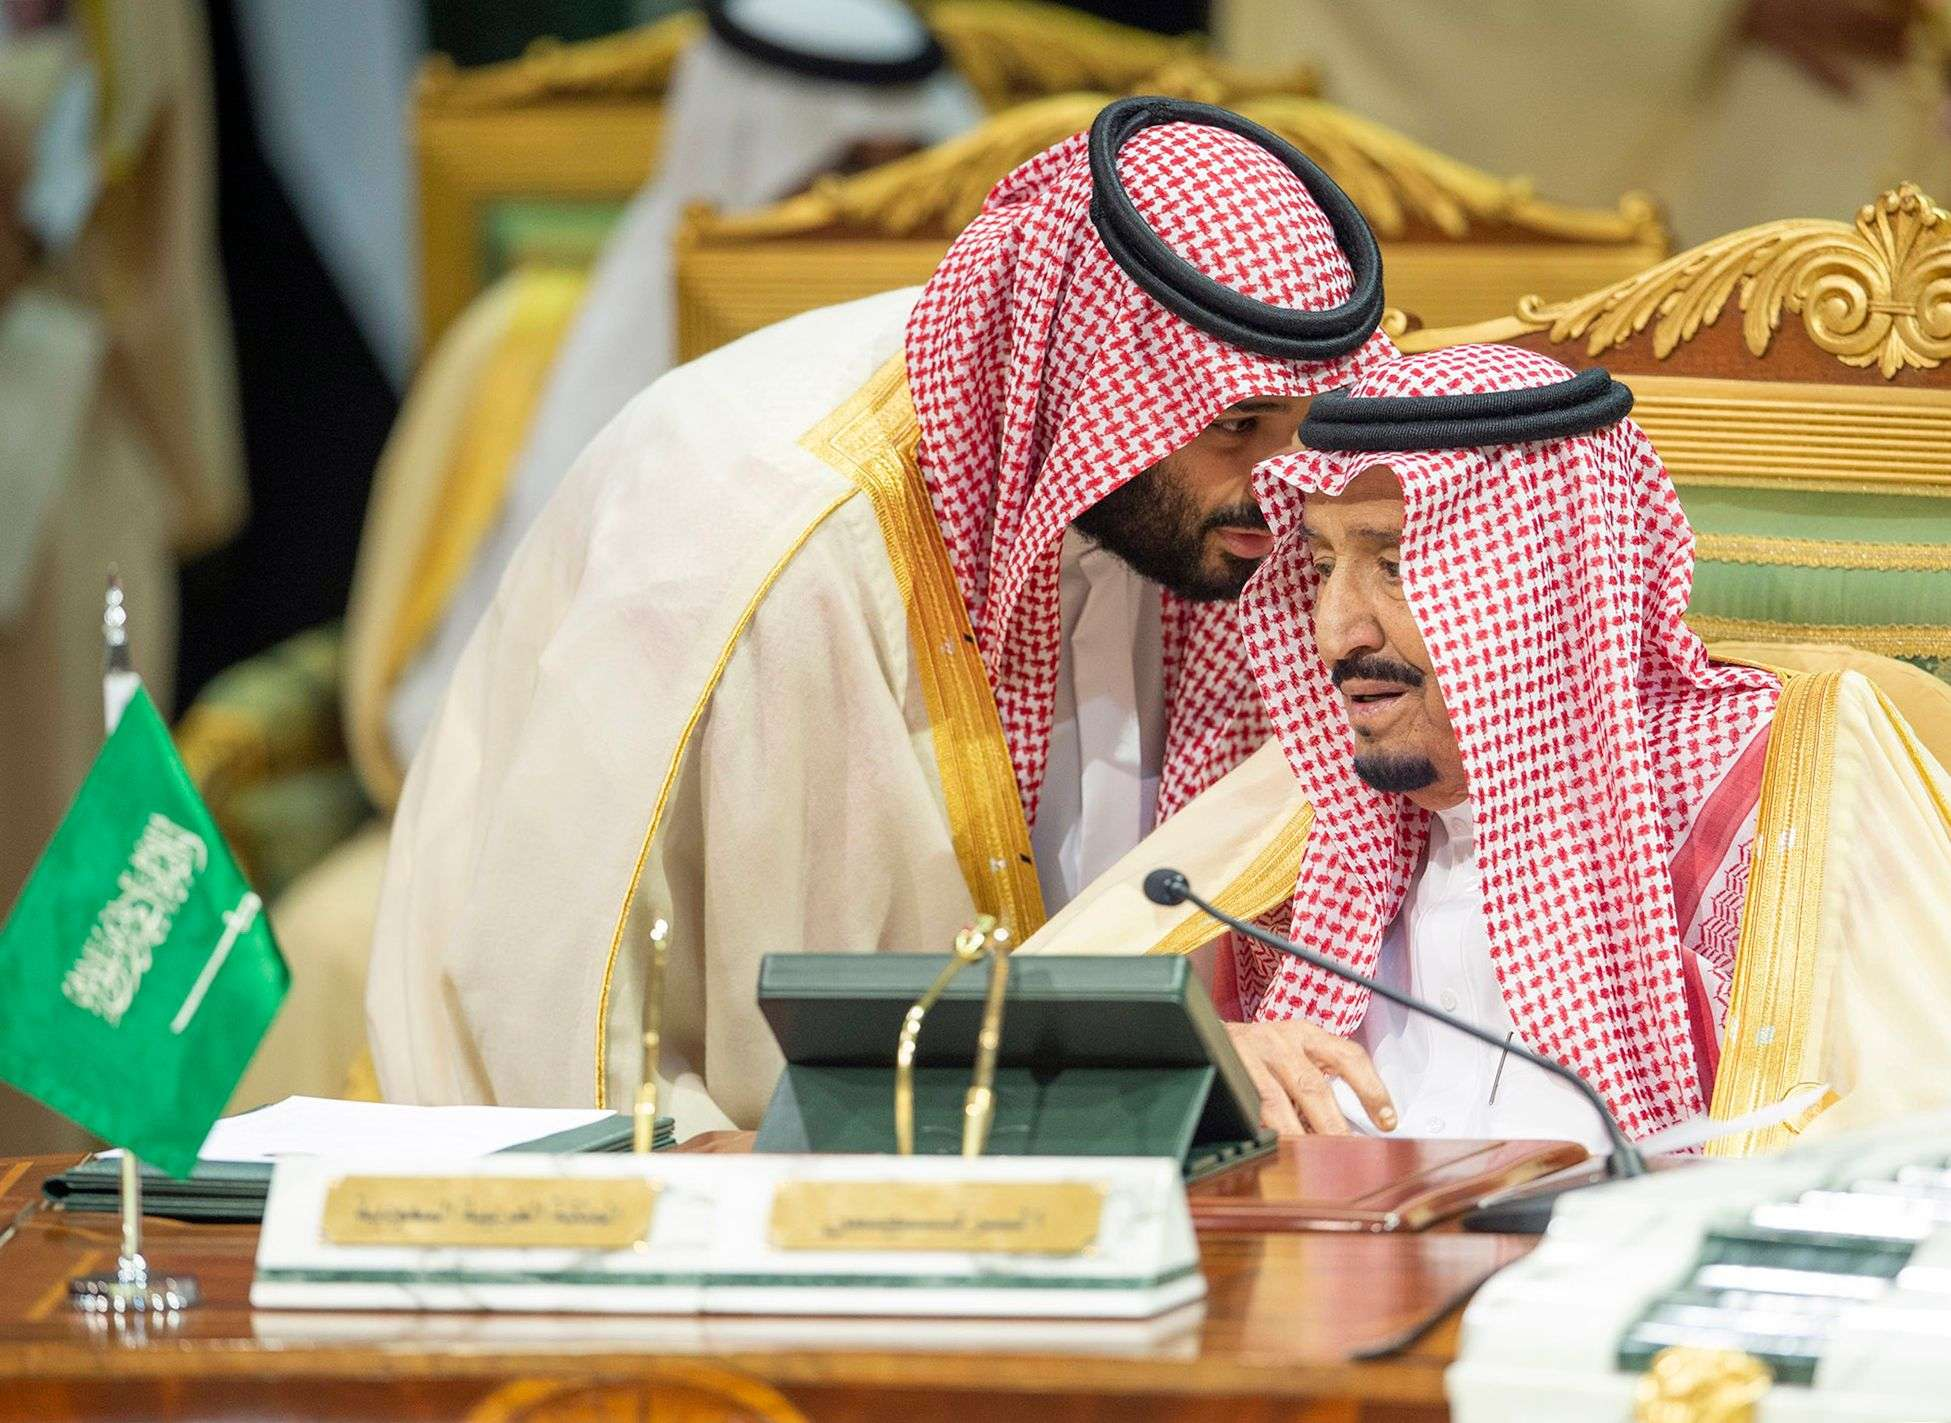 Critical juncture. Saudi Crown Prince Mohammed bin Salman bin Abdulaziz (L) speaks with Saudi King Salman bin Abdulaziz at the Diriya Palace in the Saudi capital Riyadh. (AFP)